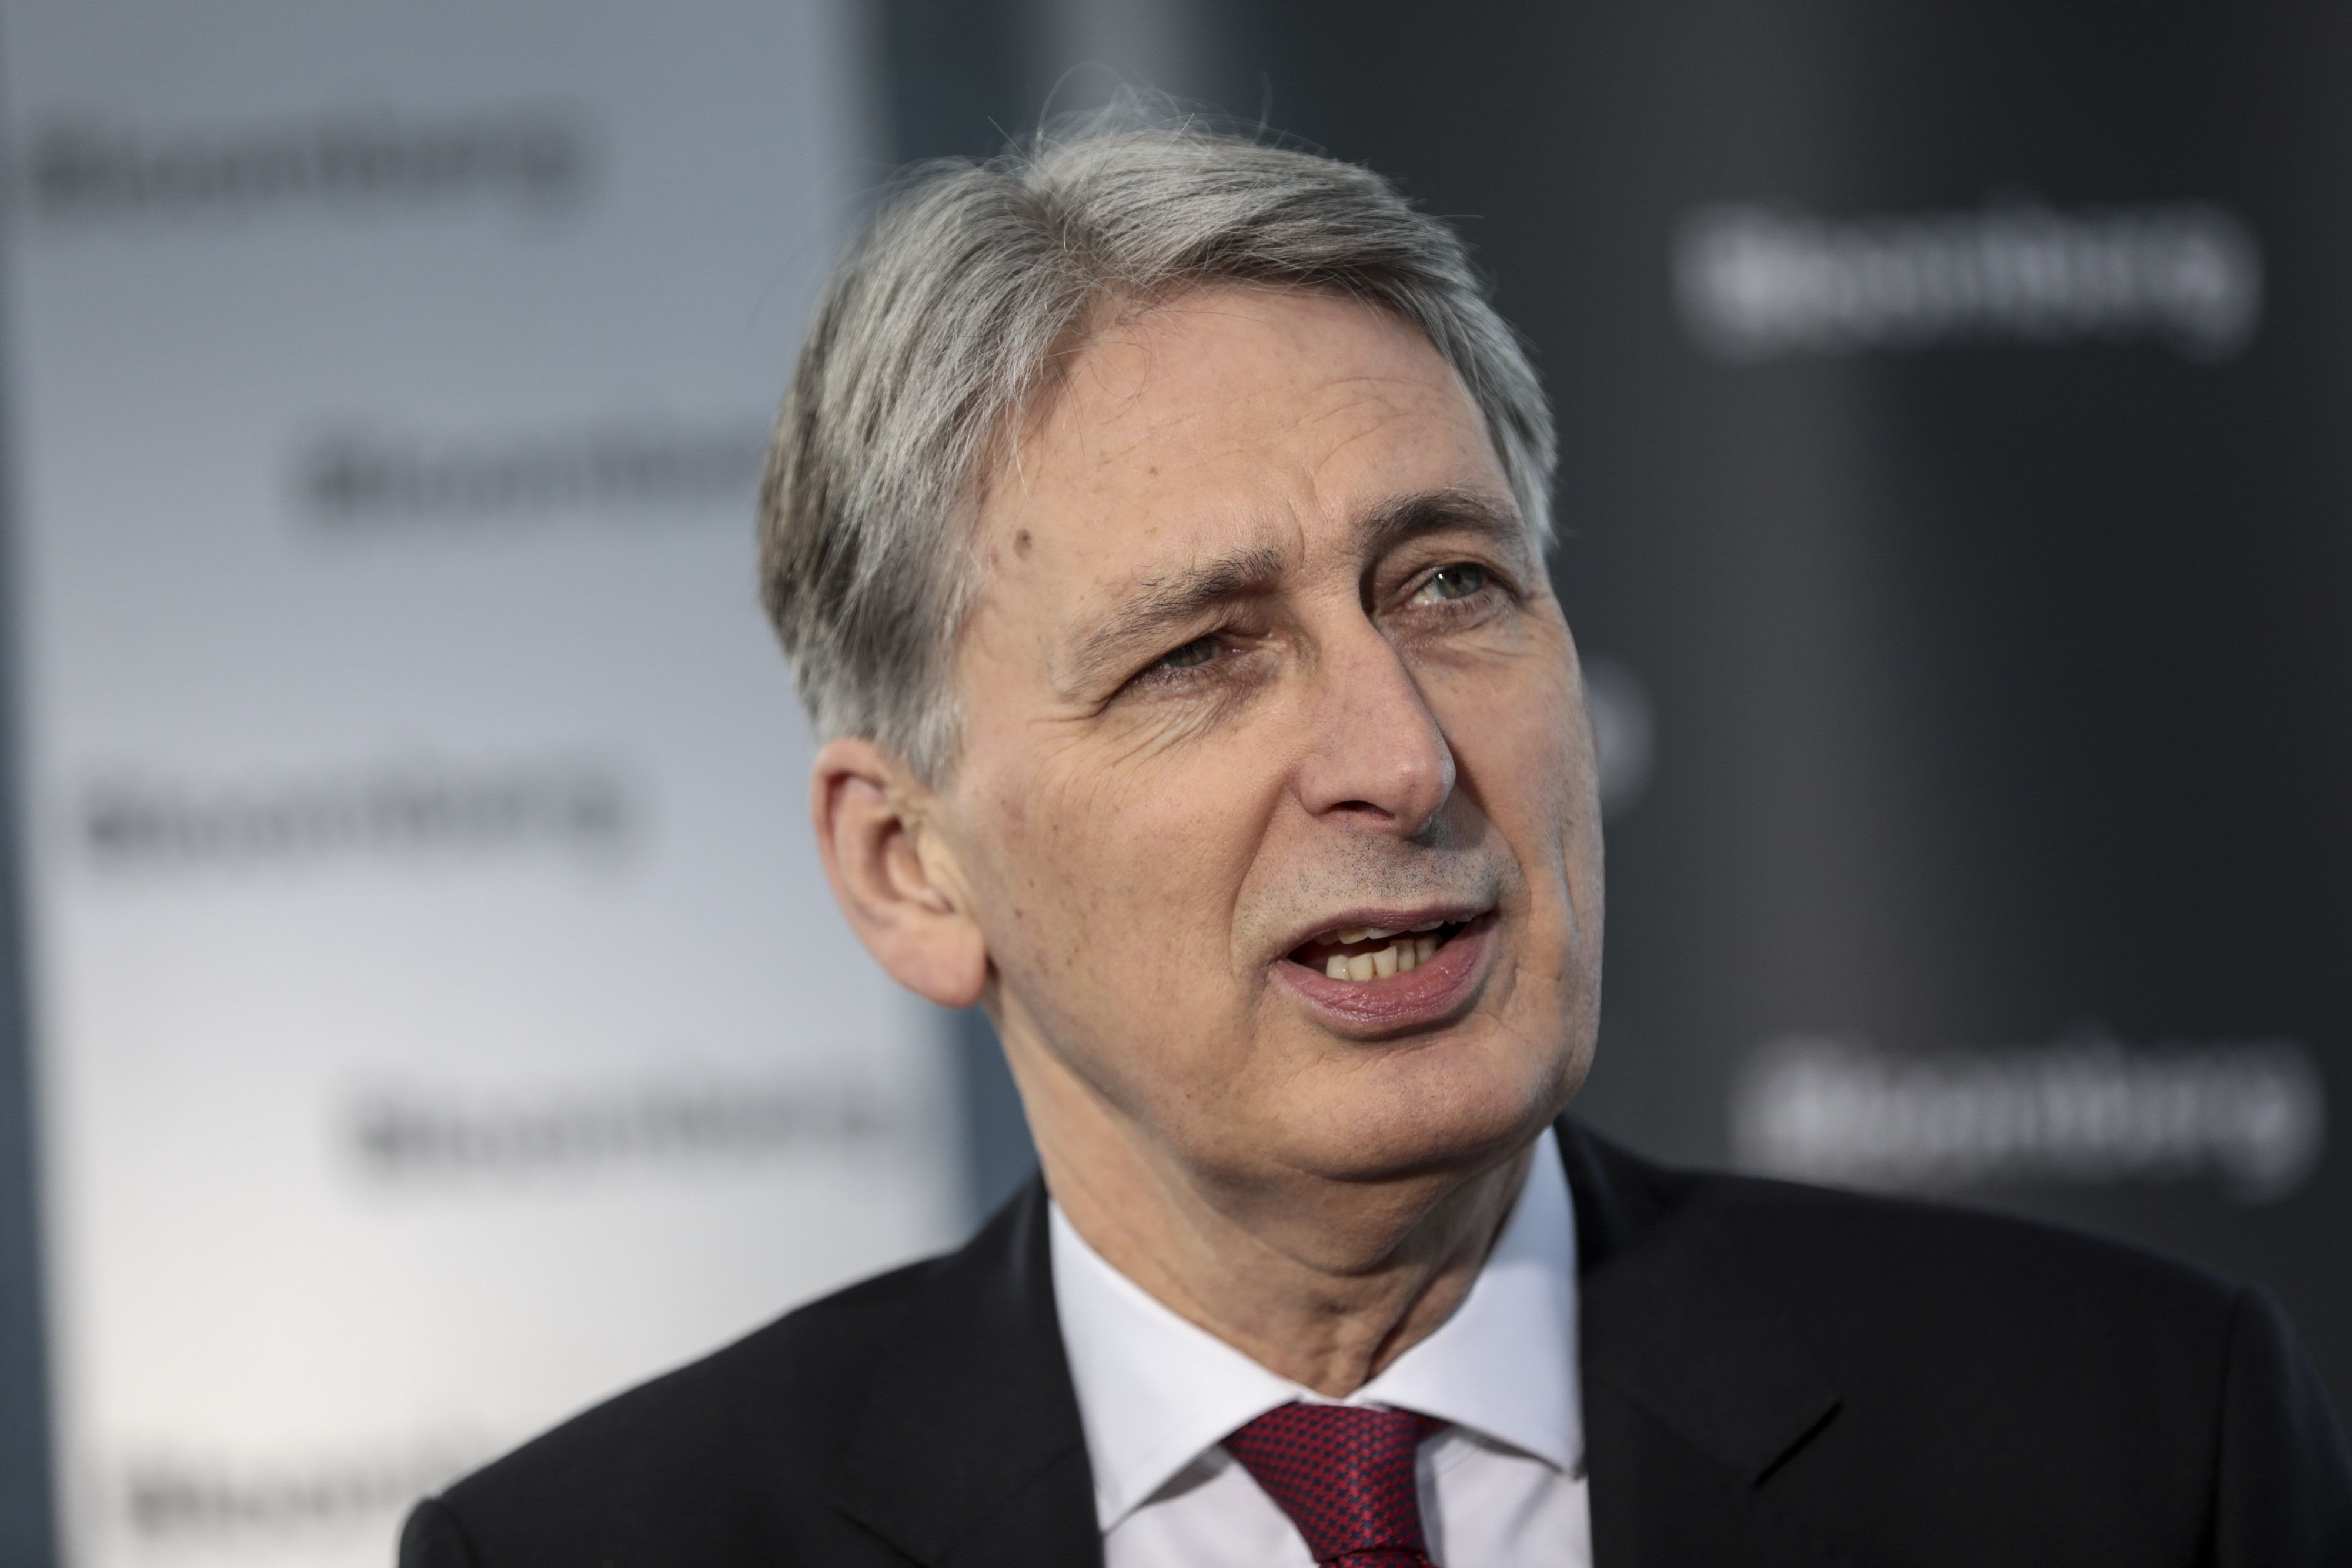 Backbench Tory Revolt Over Chancellor's 'Very Modest' Brexit